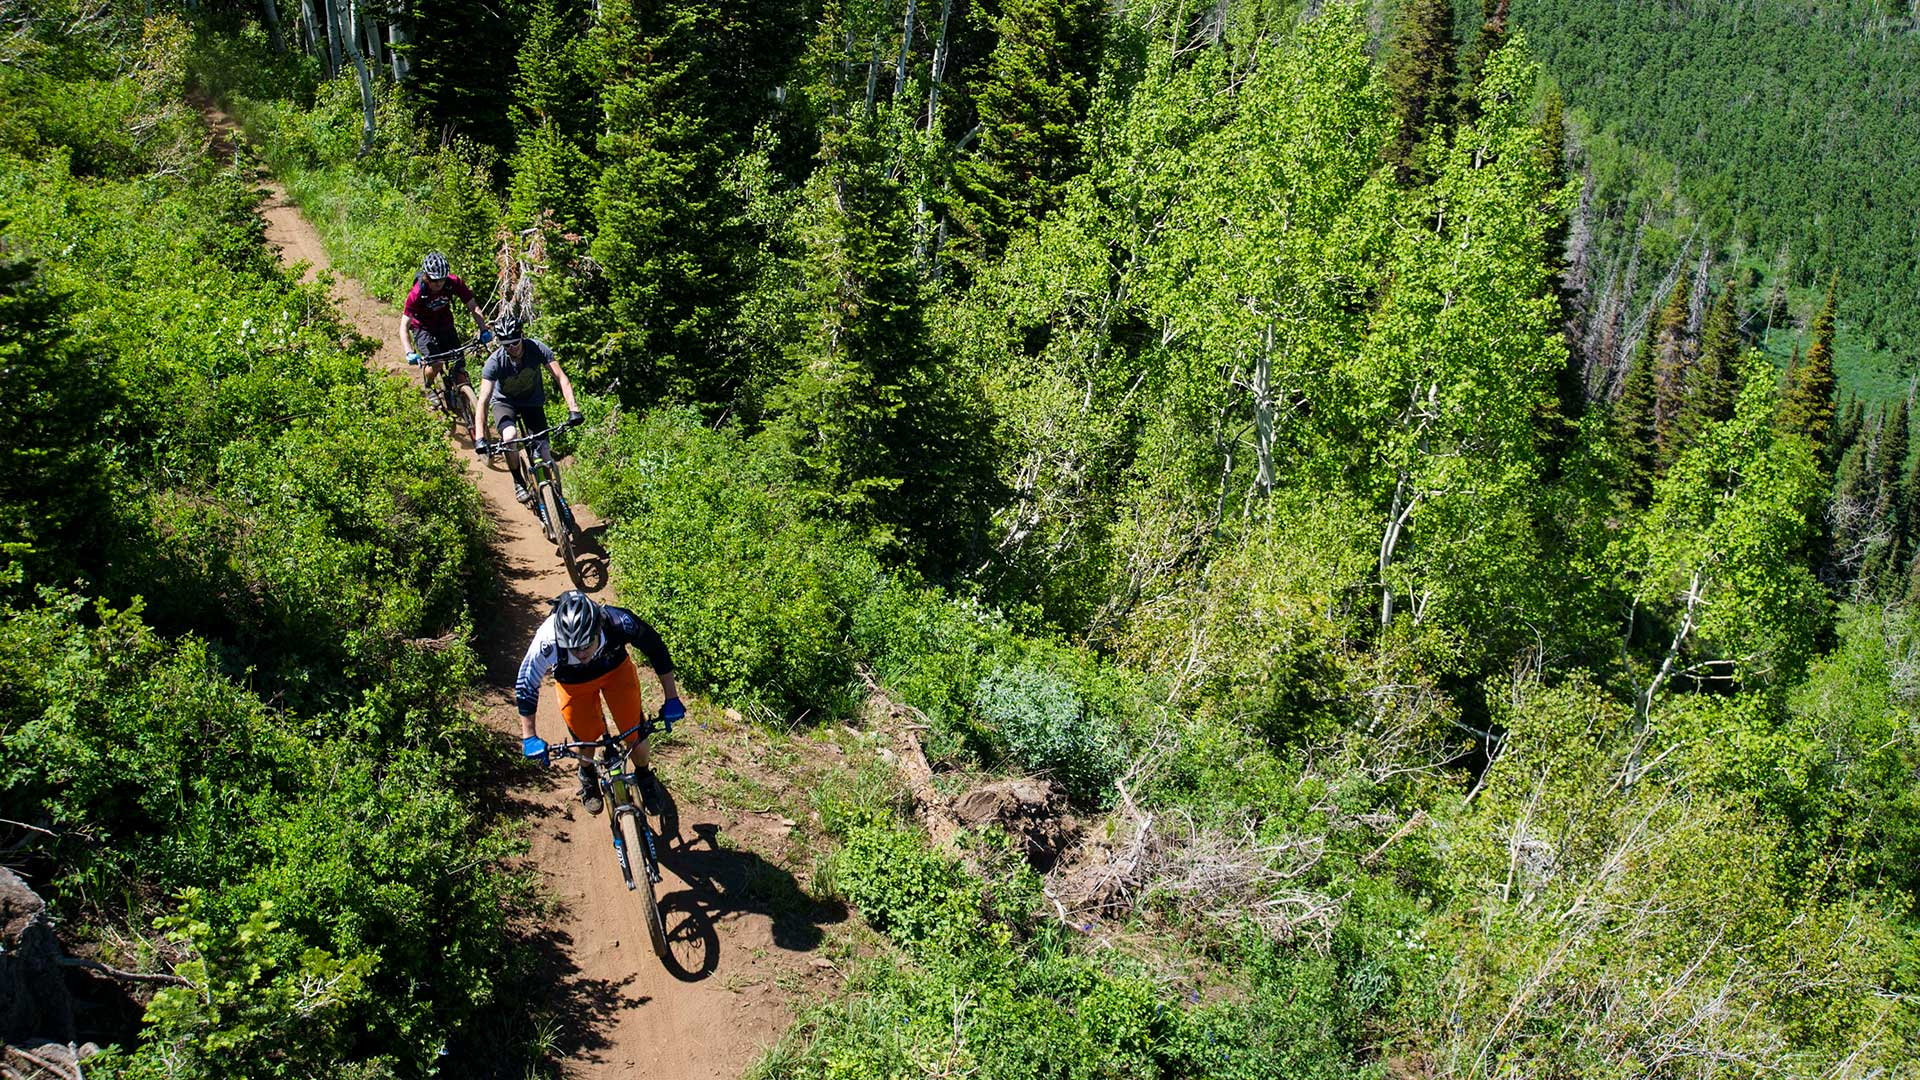 Guided Local Mountain Biking Tour from White Pine Touring in Park City, UT.